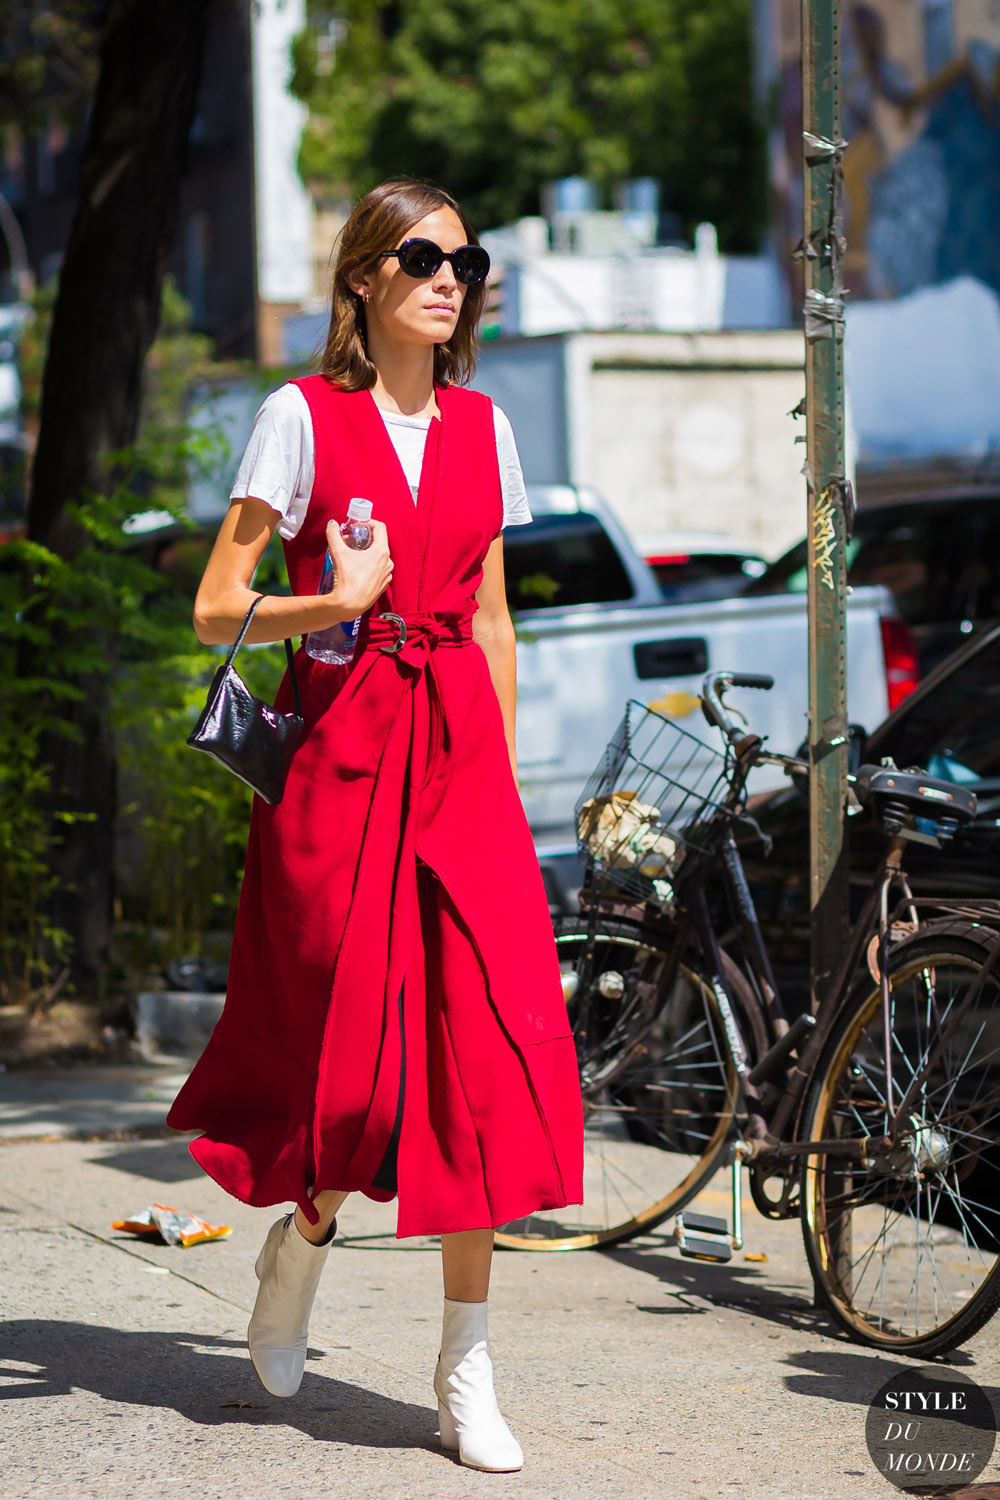 Alexa-Chung-by-STYLEDUMONDE-Street-Style-Fashion-Photography0E2A6836